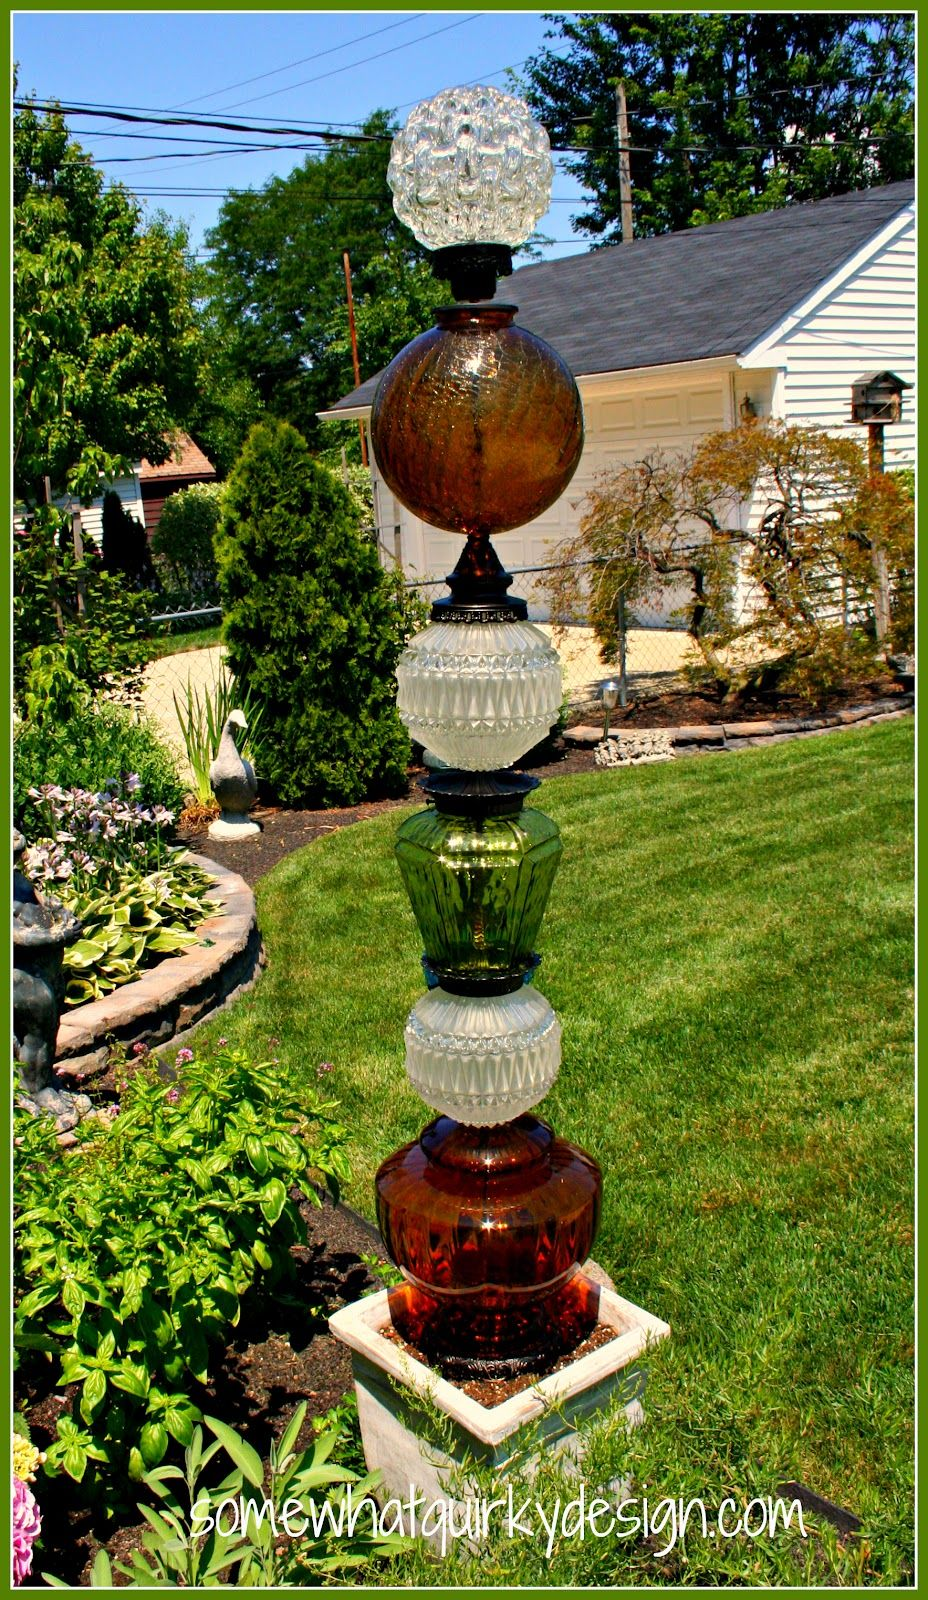 Glass yard art  Somewhat Quirky Building Glass Towers  tall glass totem poles